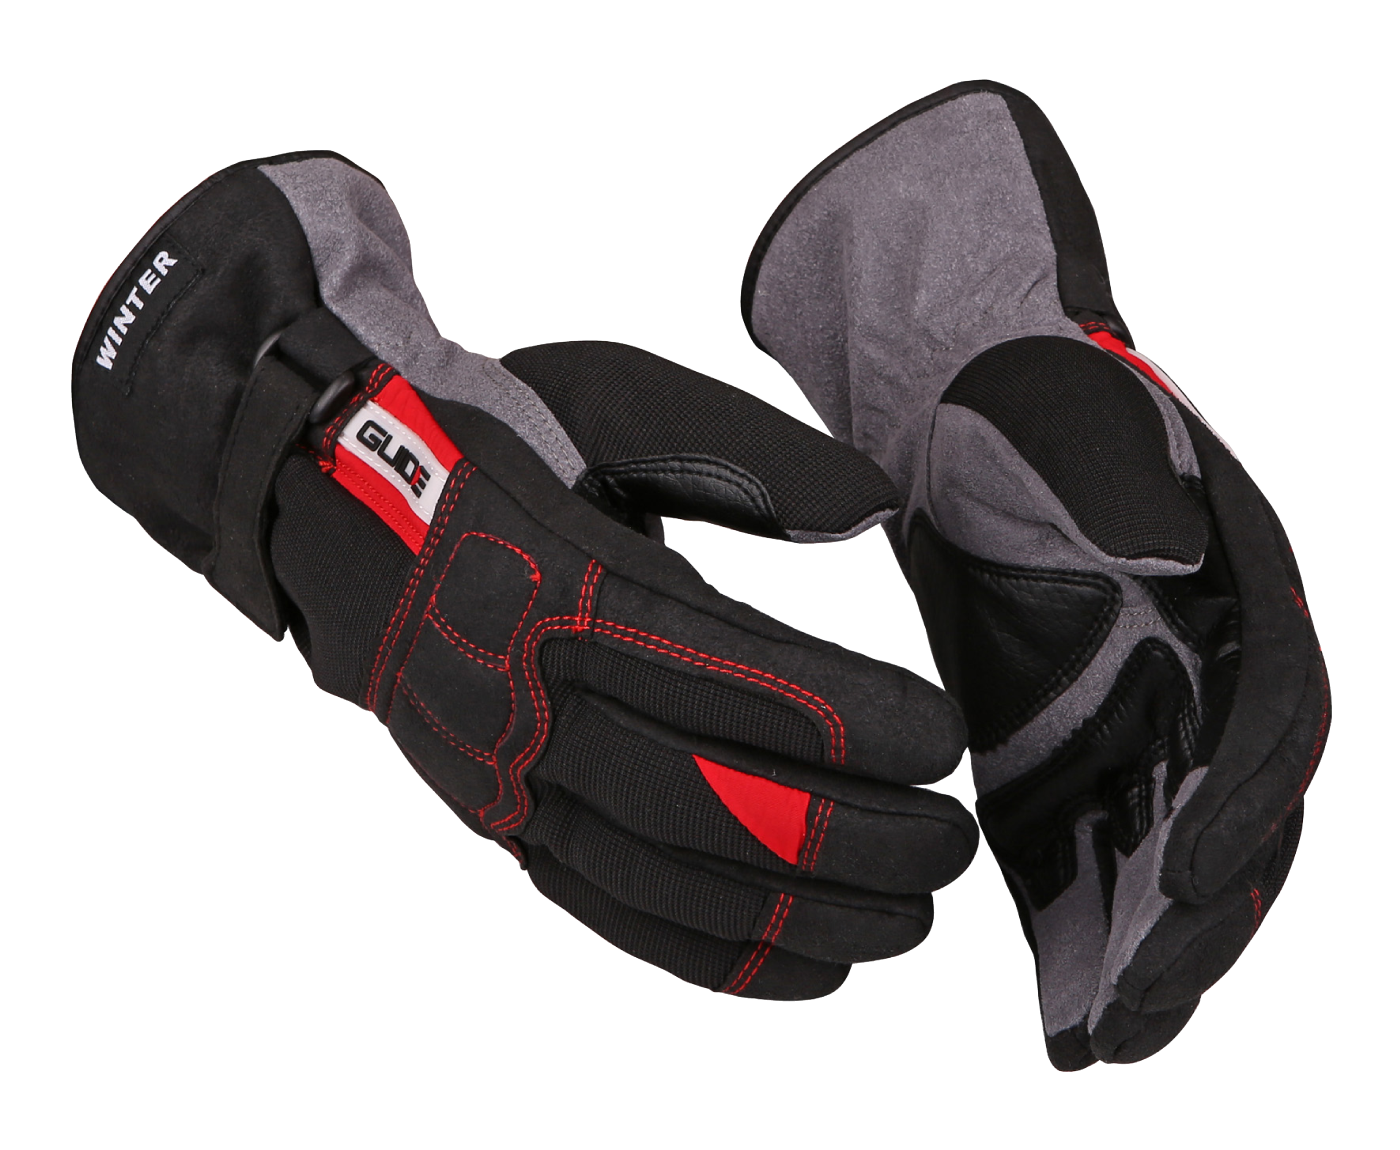 Warm Lined Glove GUIDE 5050W